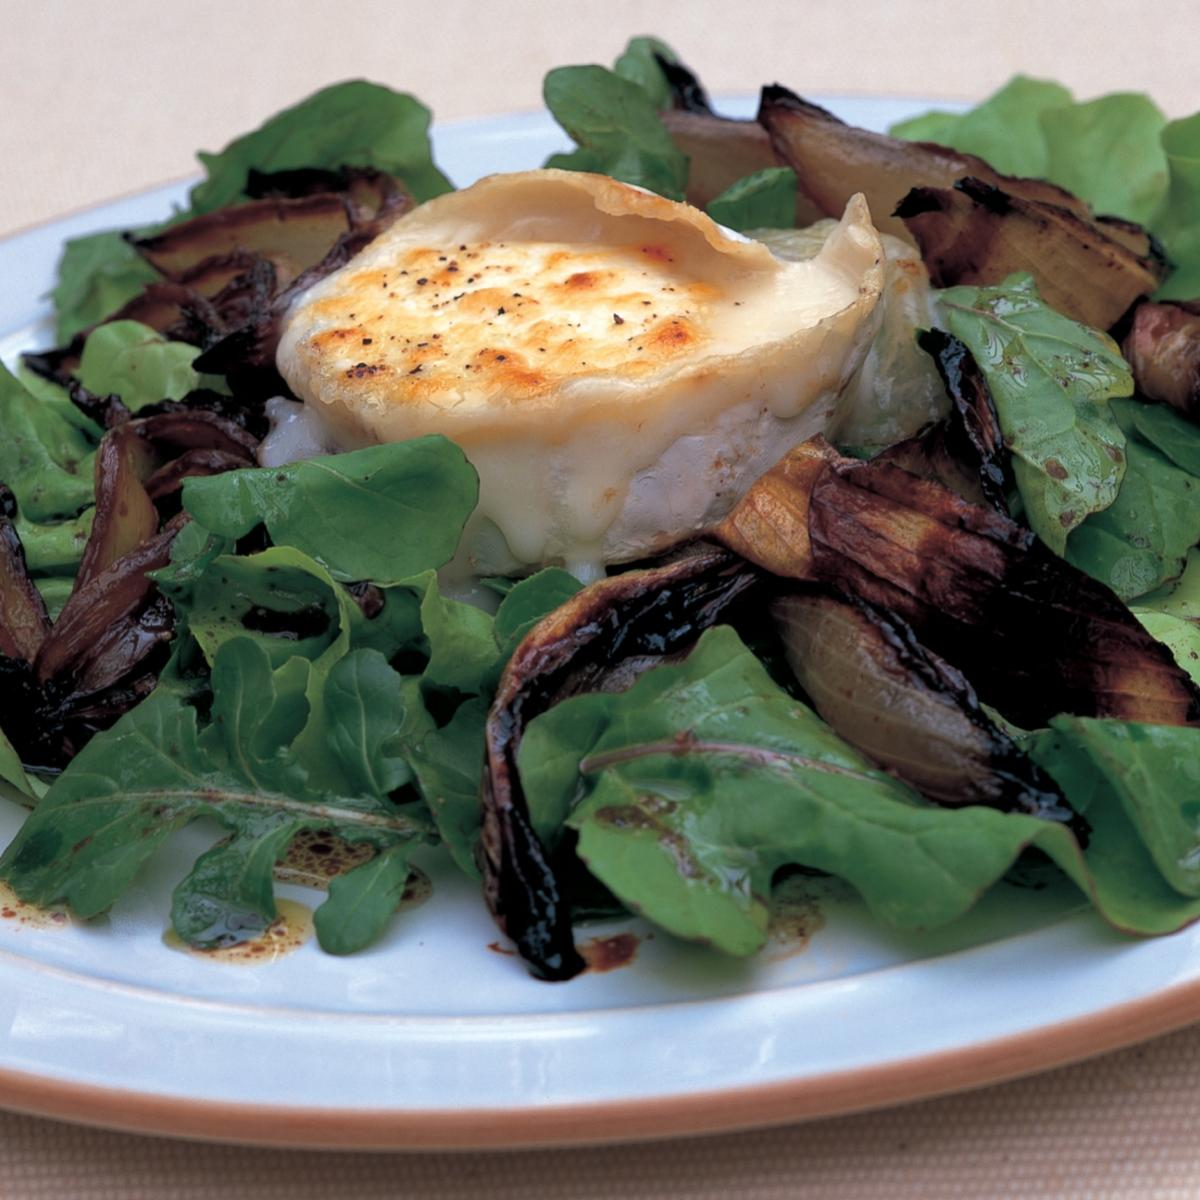 A picture of Delia's Toasted Goats' Cheese with Blackened Sherry-vinegar Onions recipe